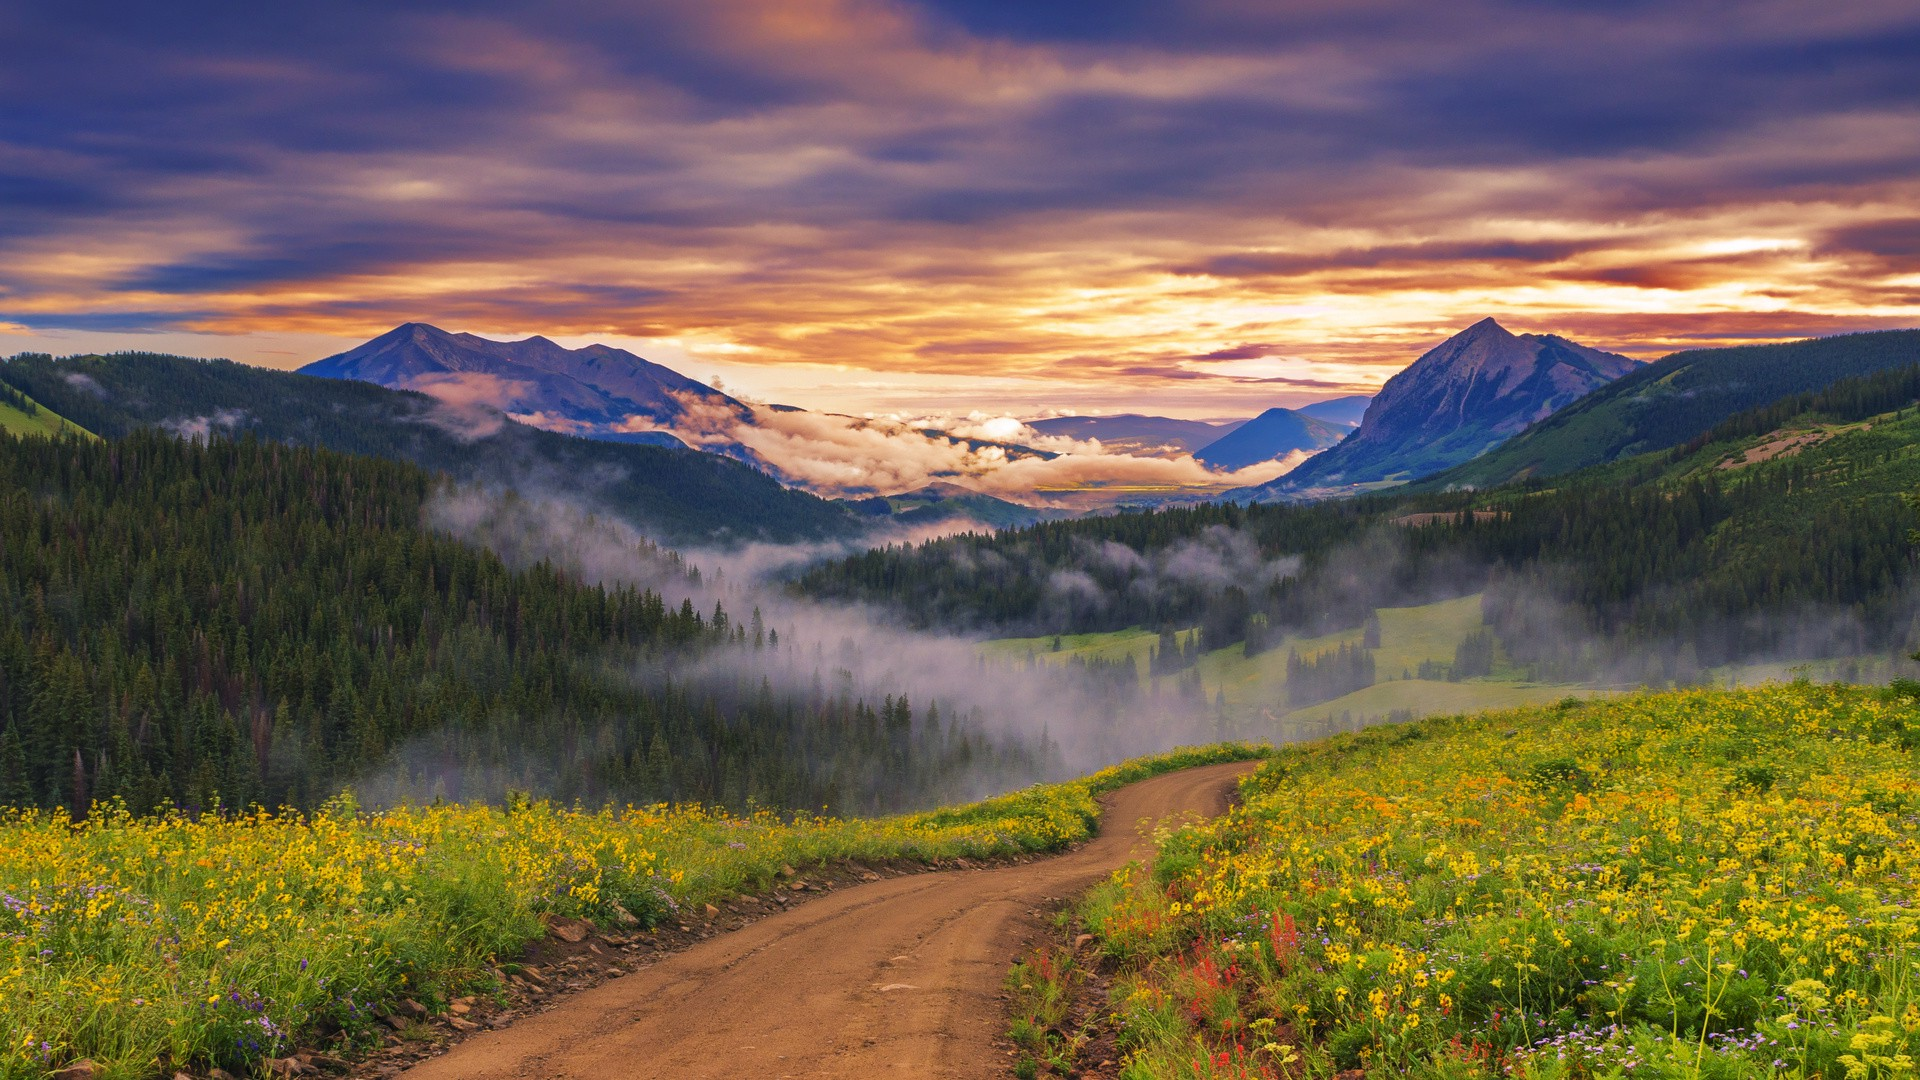 landscape Nature Wildflowers Path Mist Forest Trees Sunset 1920x1080